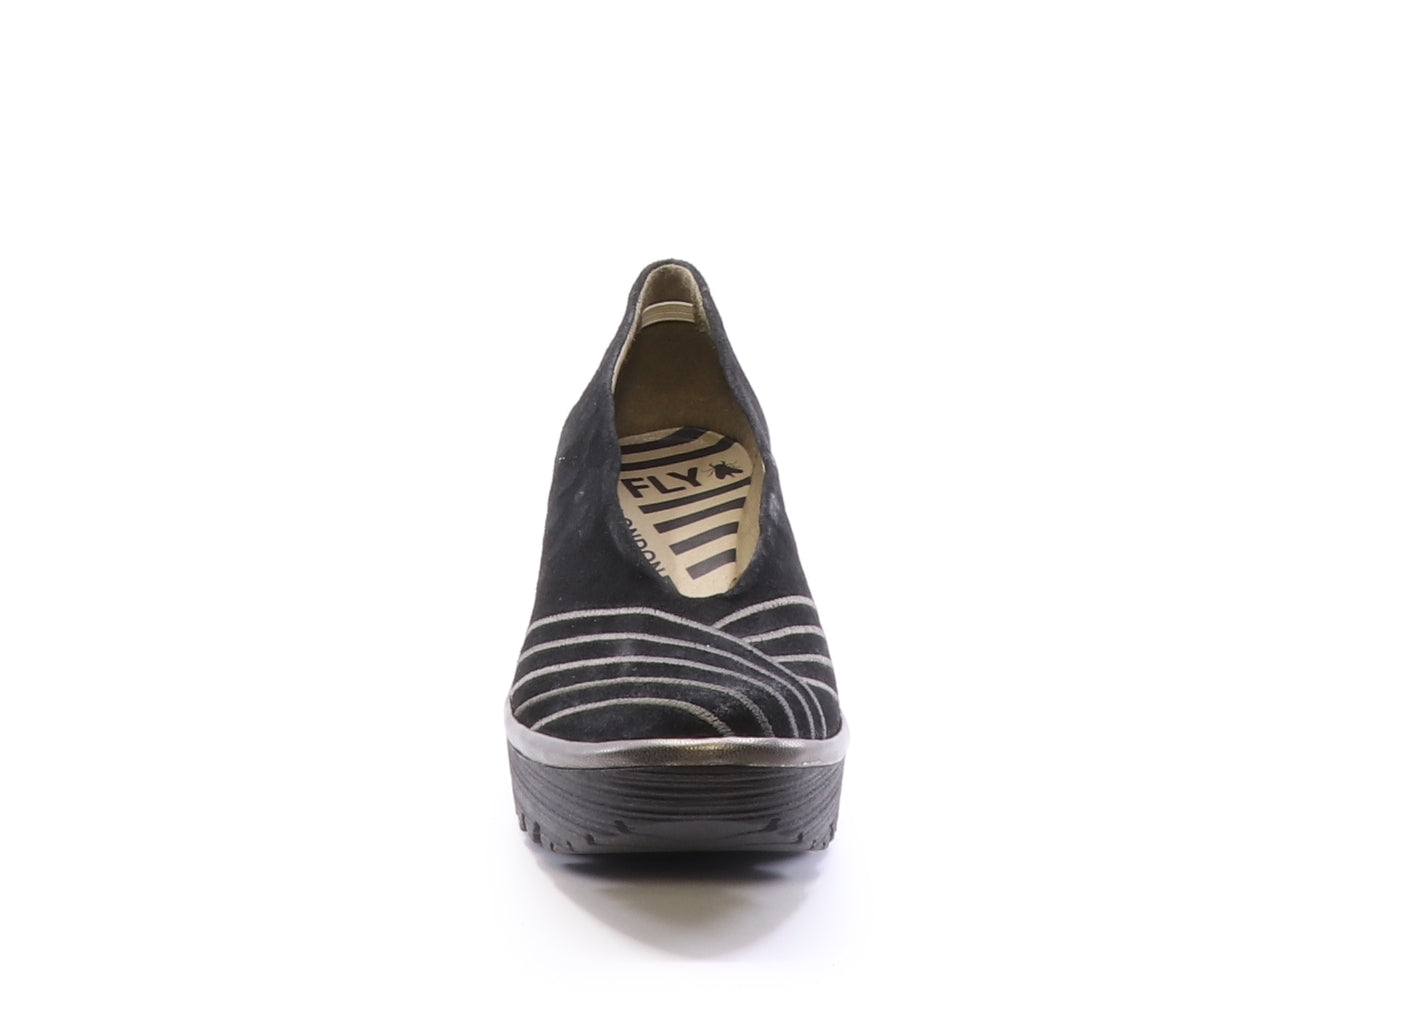 Fly London Yaku in black bronze shoe available at Shoe Muse